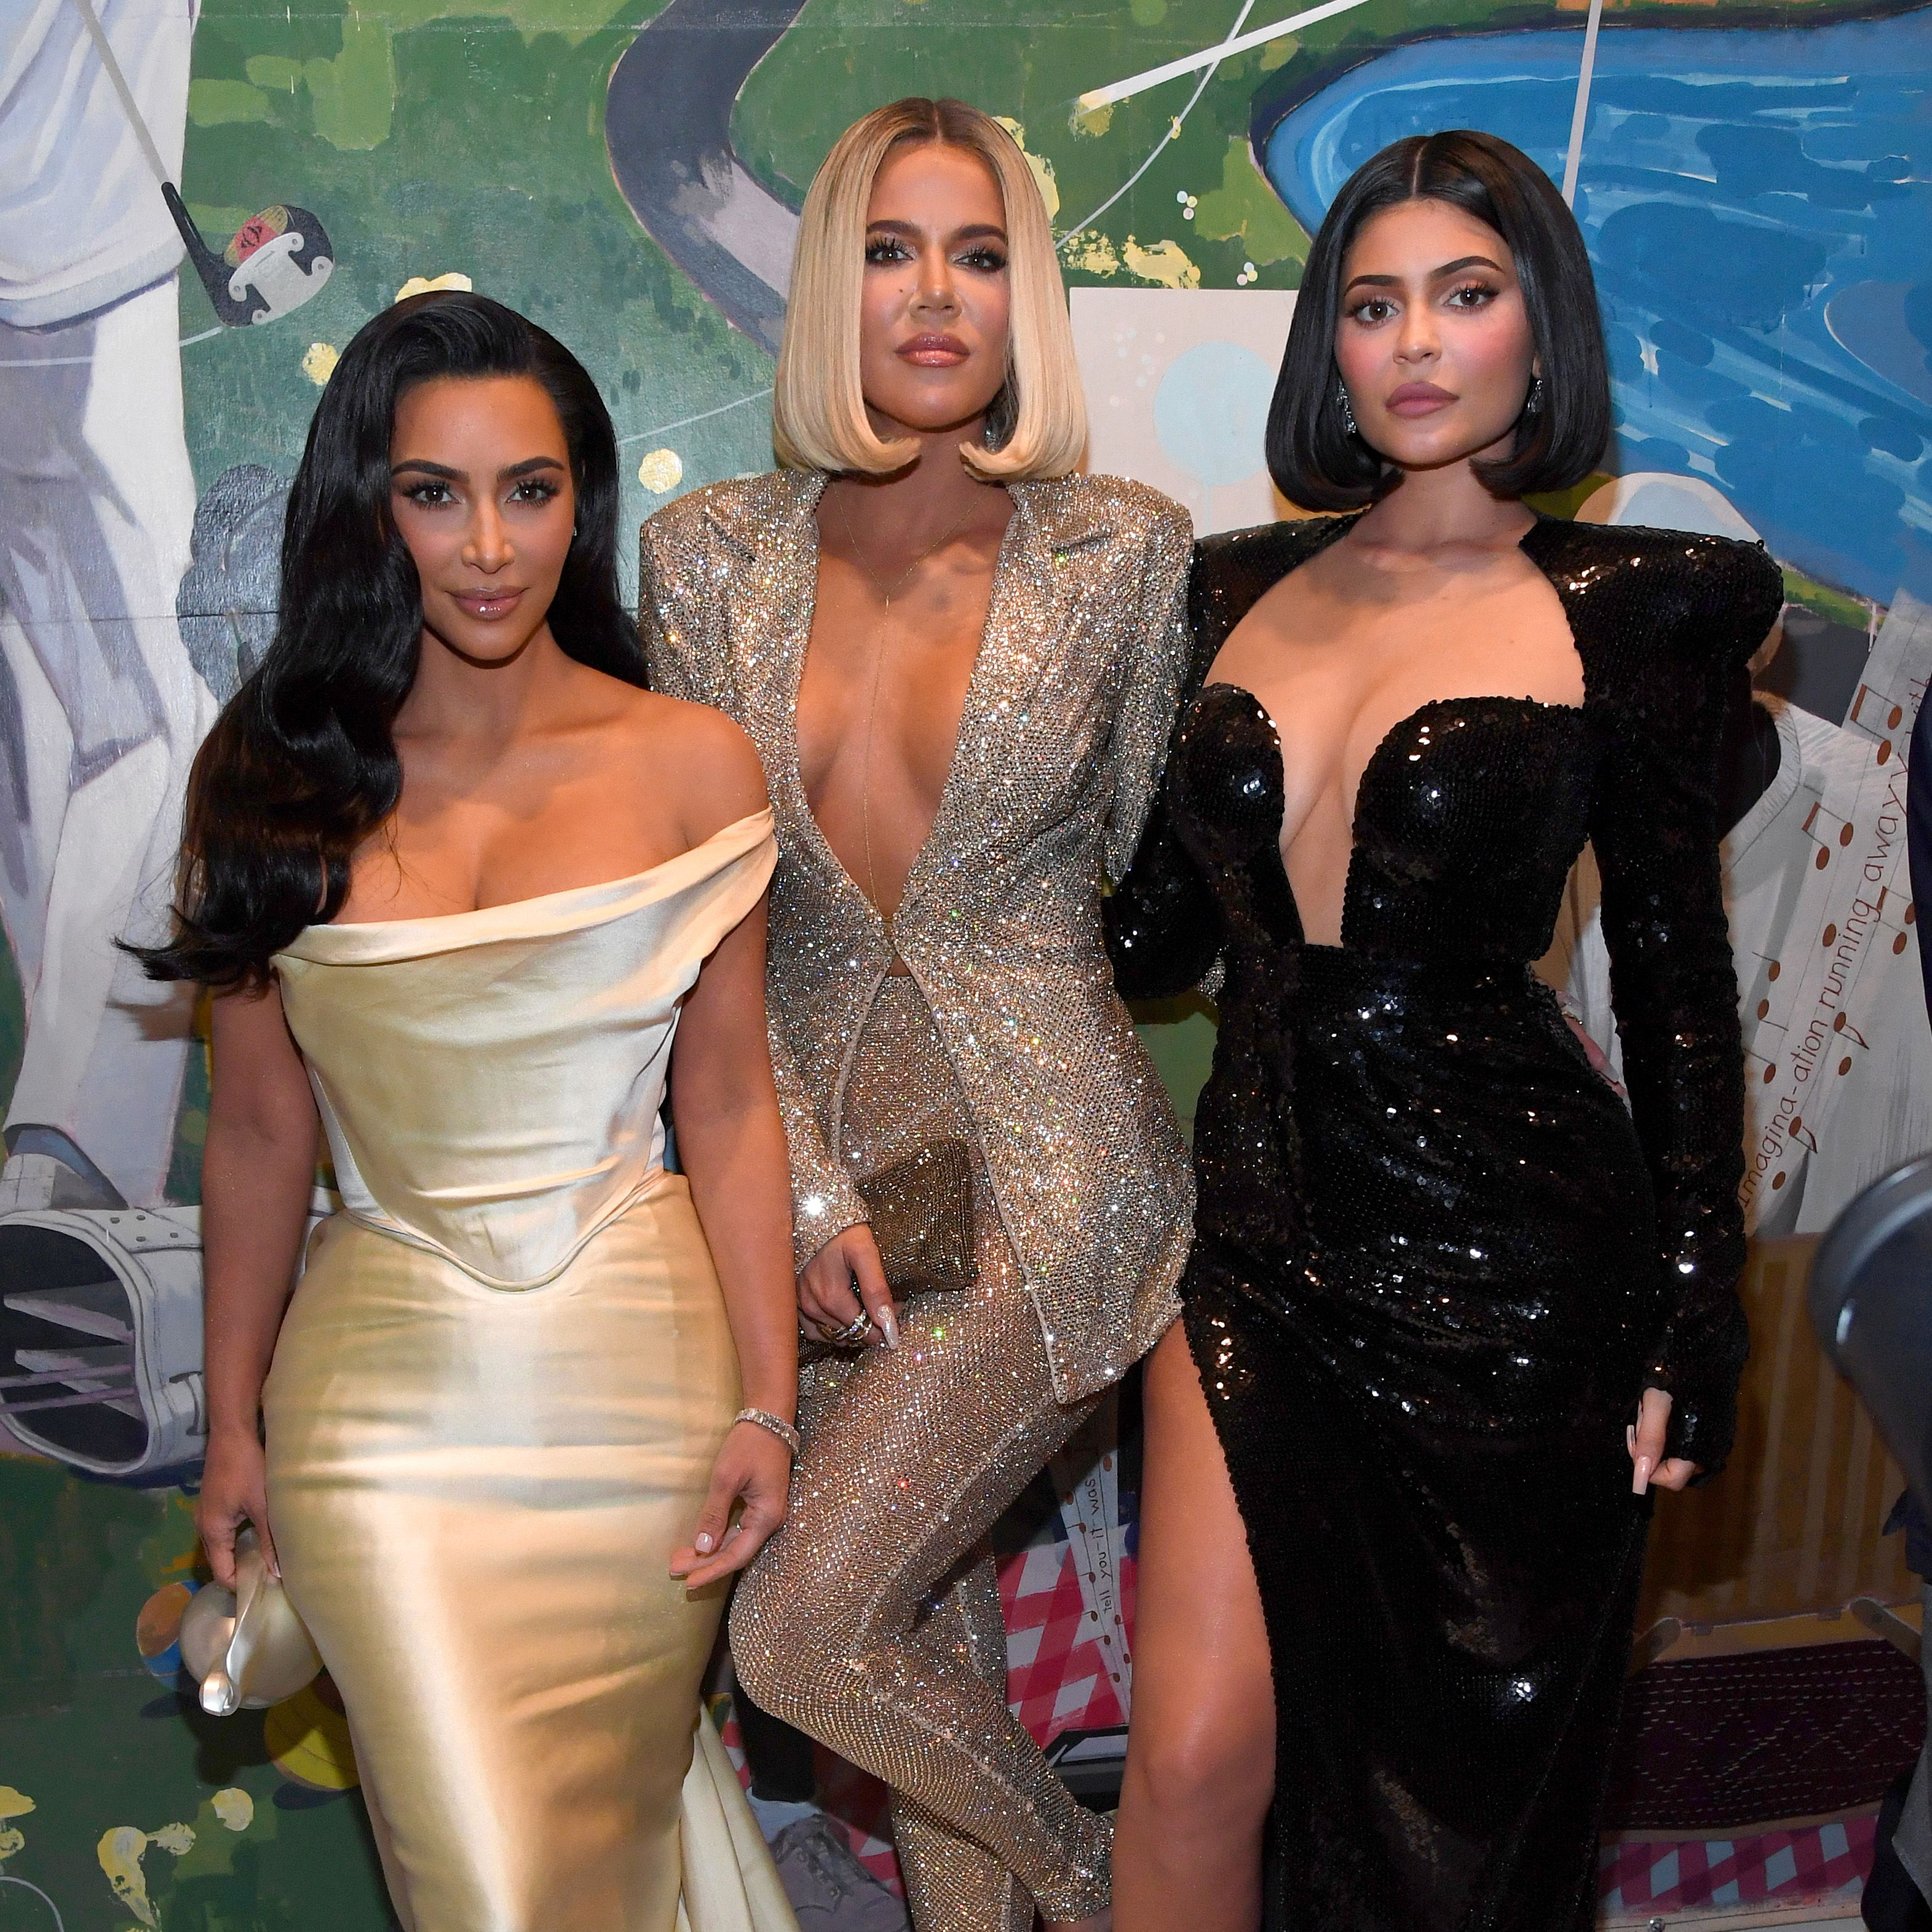 Kim Kardashian, Khloé Kardashian And Kylie Jenner Receive Criticism Over Australia Bushfire Relief Efforts